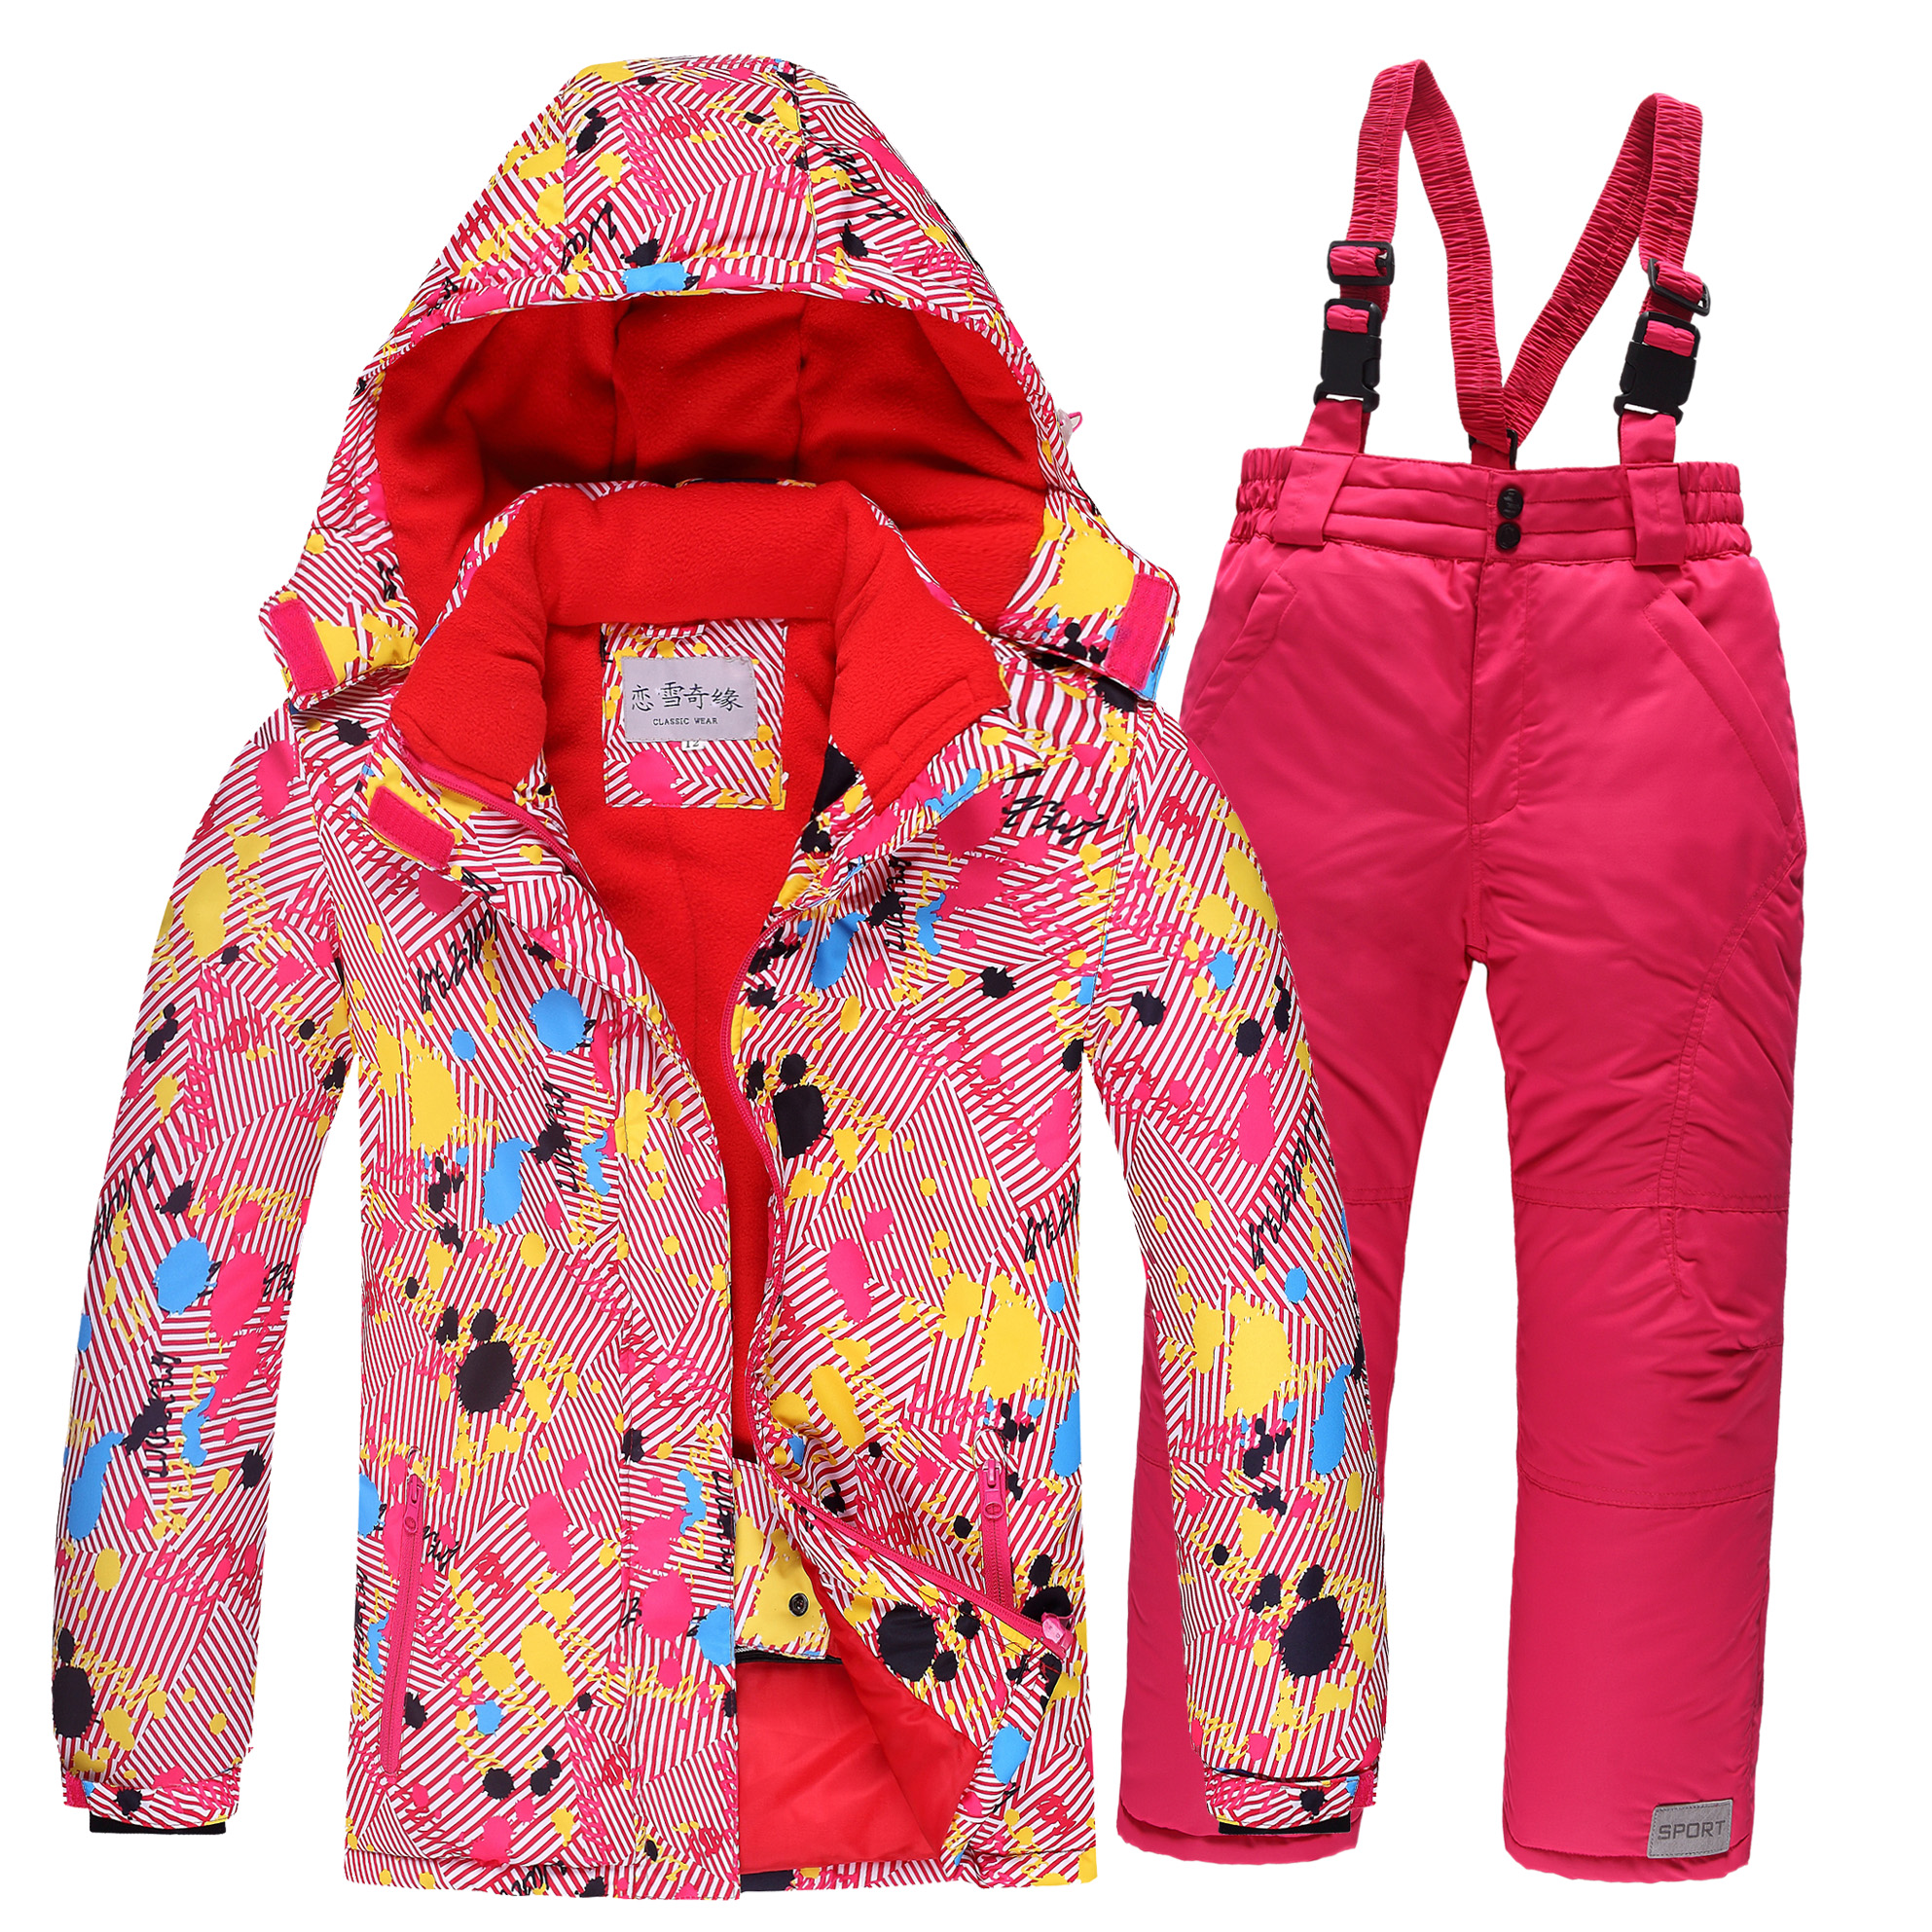 9d65e4ec8d Mioigee 2019 Kids Ski Suit Children Windproof Waterproof Colorful Girls for  Boy Snowboard Snow Jacket Pants Winter Clothes Sets